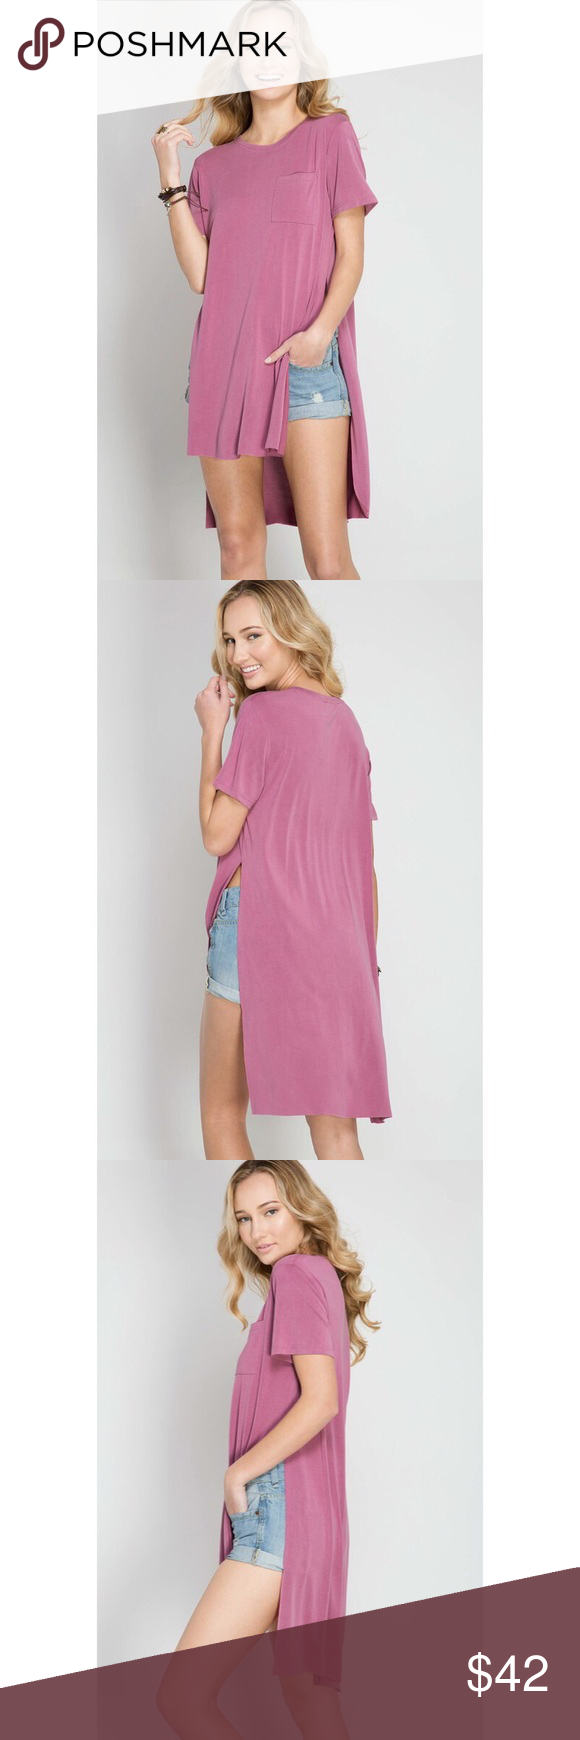 Gotta Have It Hi-Low Slit Top - Mauve We have put the Gotta Have It Hi-Low Slit Top at the top of our must-have list! Stretchy and ultra soft cotton modal mix knit top features a flowy hi-low bodice with high slits on the side.  55% Cotton 45% Modal Knit  (Available in Mauve and Slate) . . . If you would like to make an offer, please use the OFFER BUTTON. {10% discount on all 2+ orders} . . FOLLOW US✌????️ Insta ????: shop.likenarly Facebook????: likenarly Website ????: likeNarly.com likeNarly Tops #gottahaveit